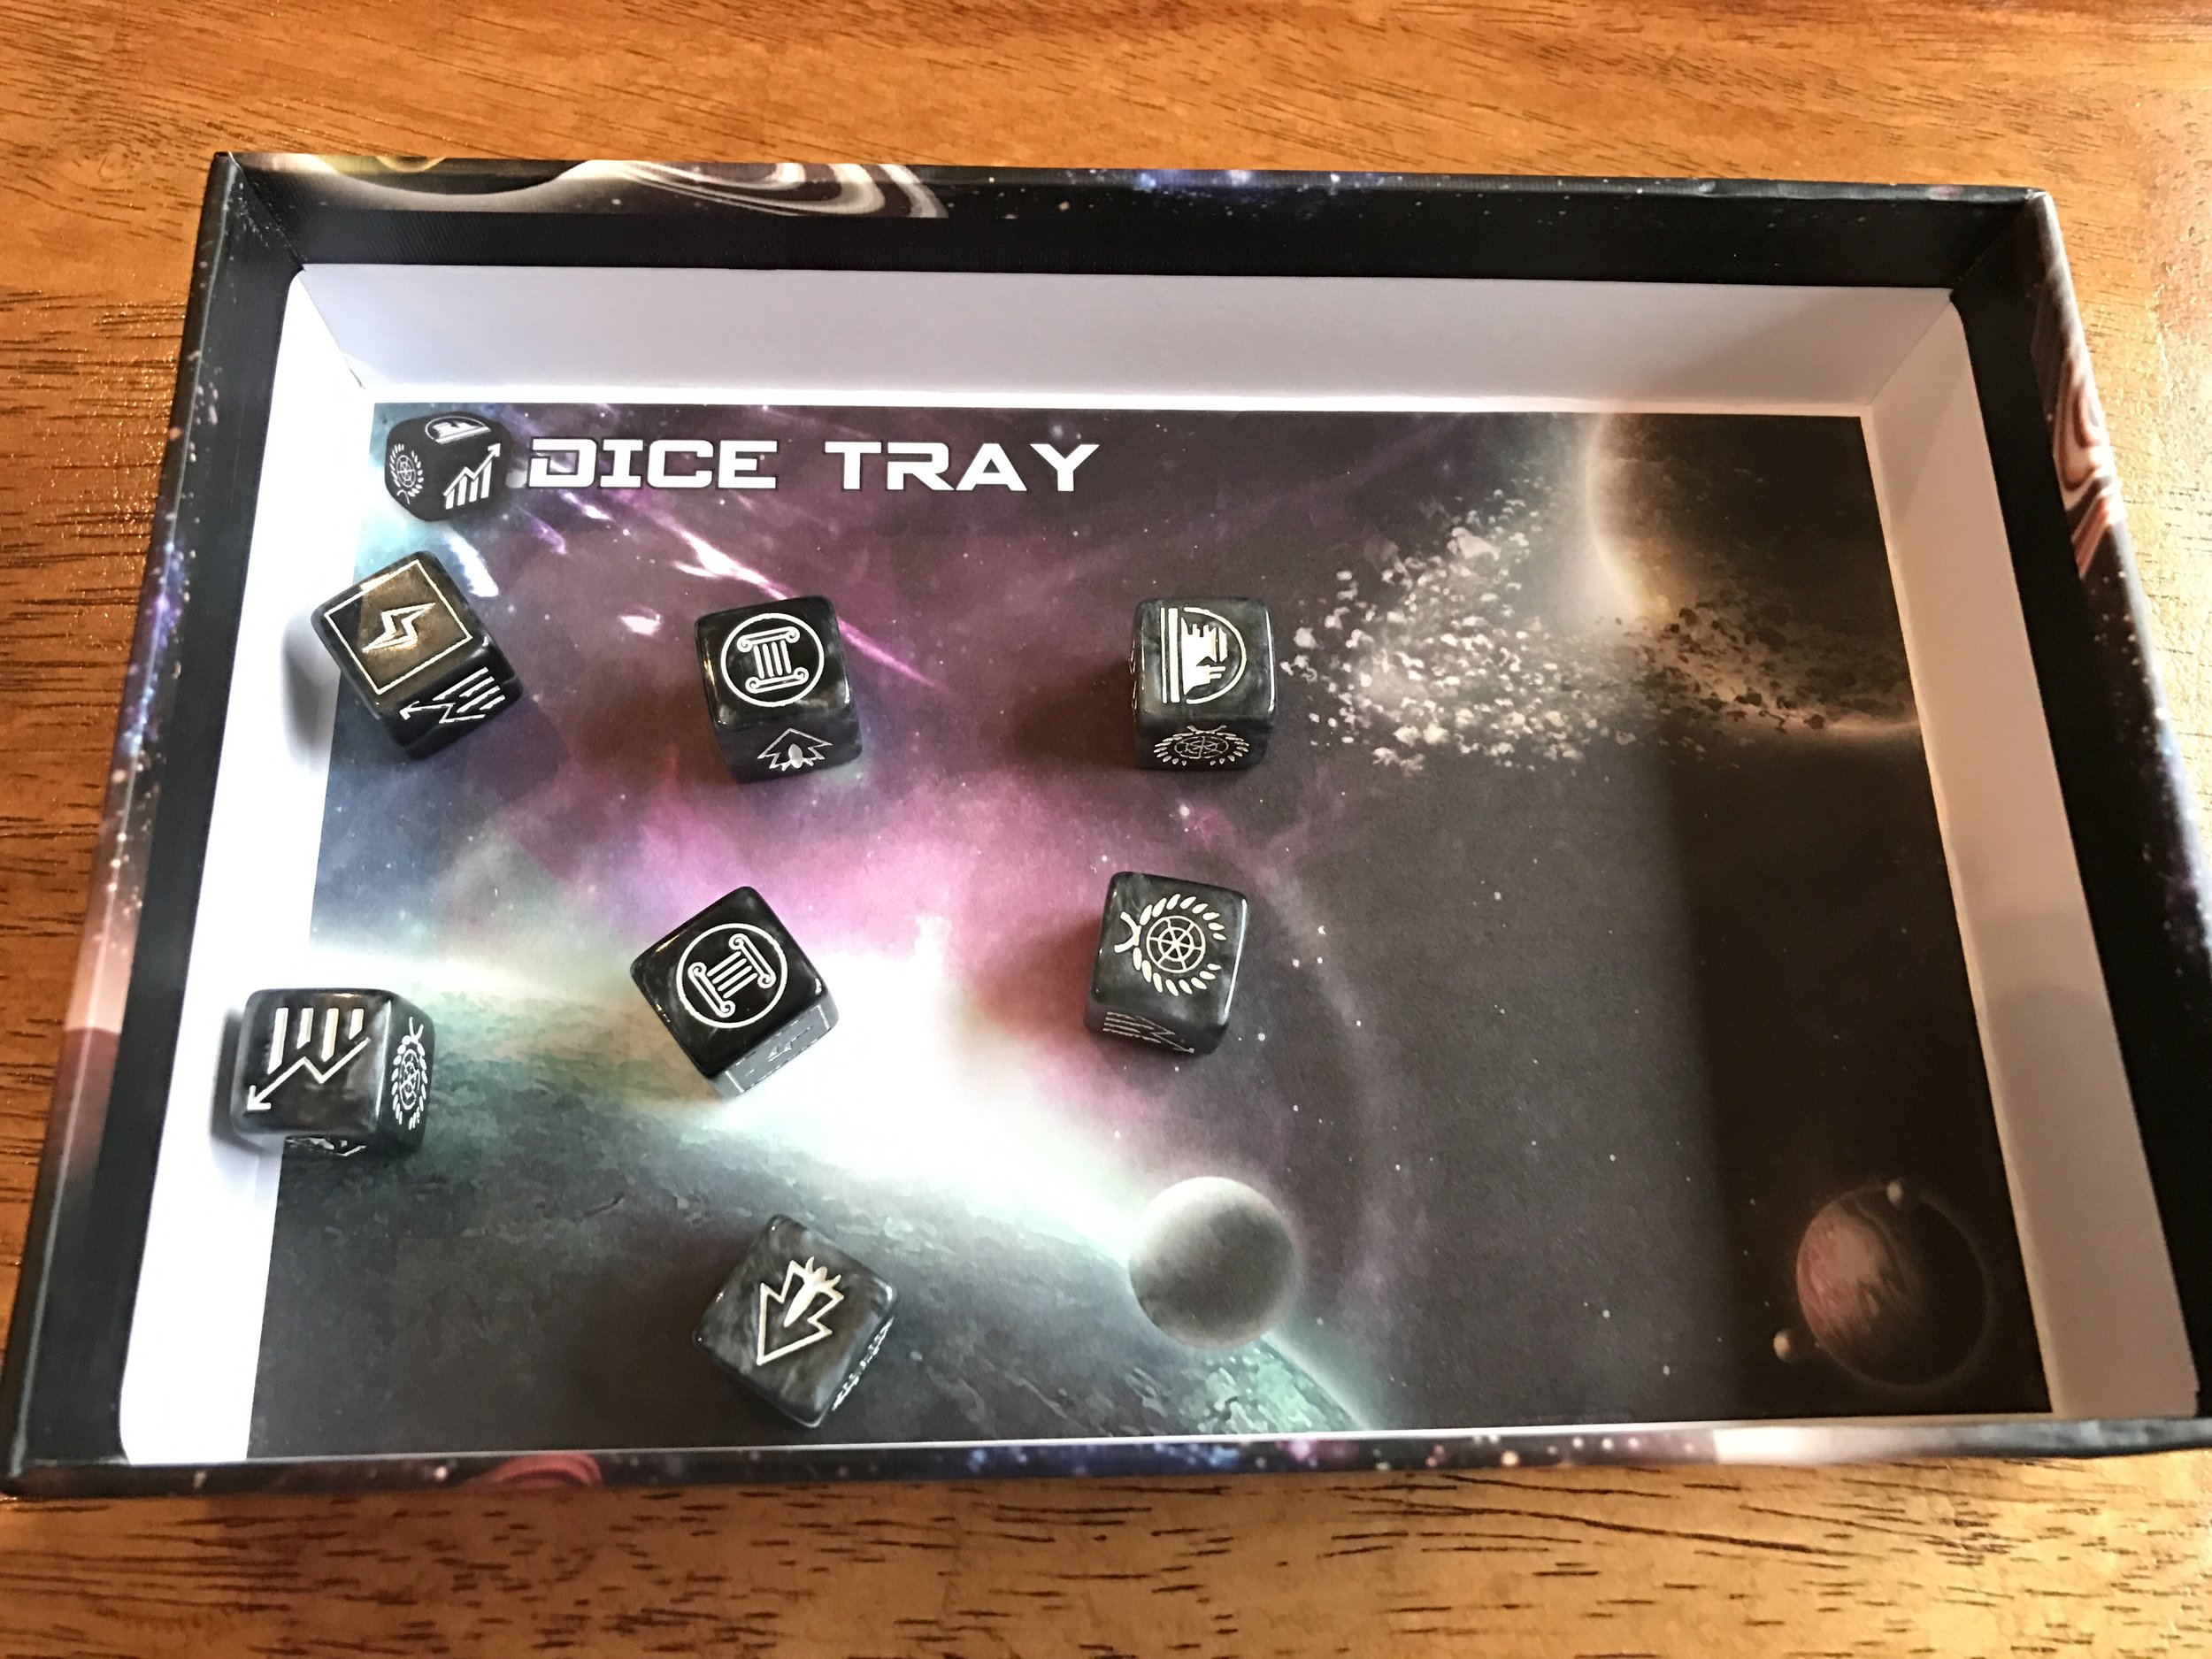 Free dice tray included in every box!